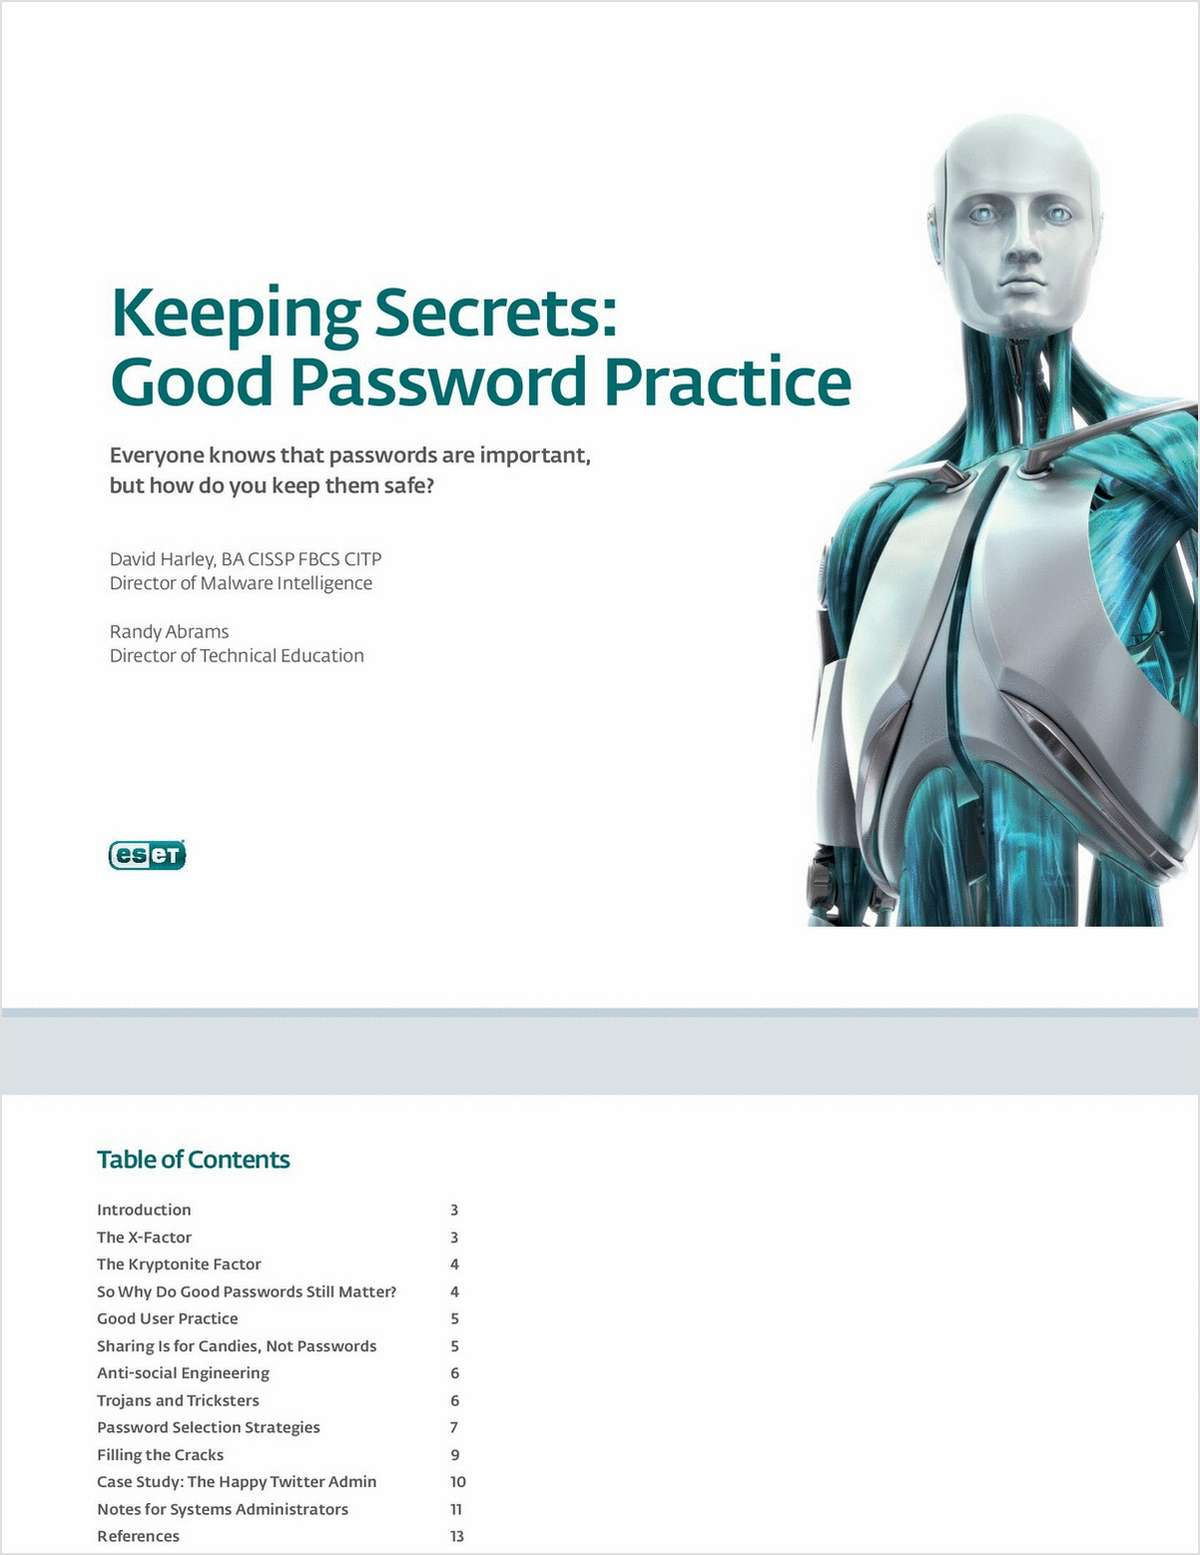 Keeping Secrets: Good Password Practice